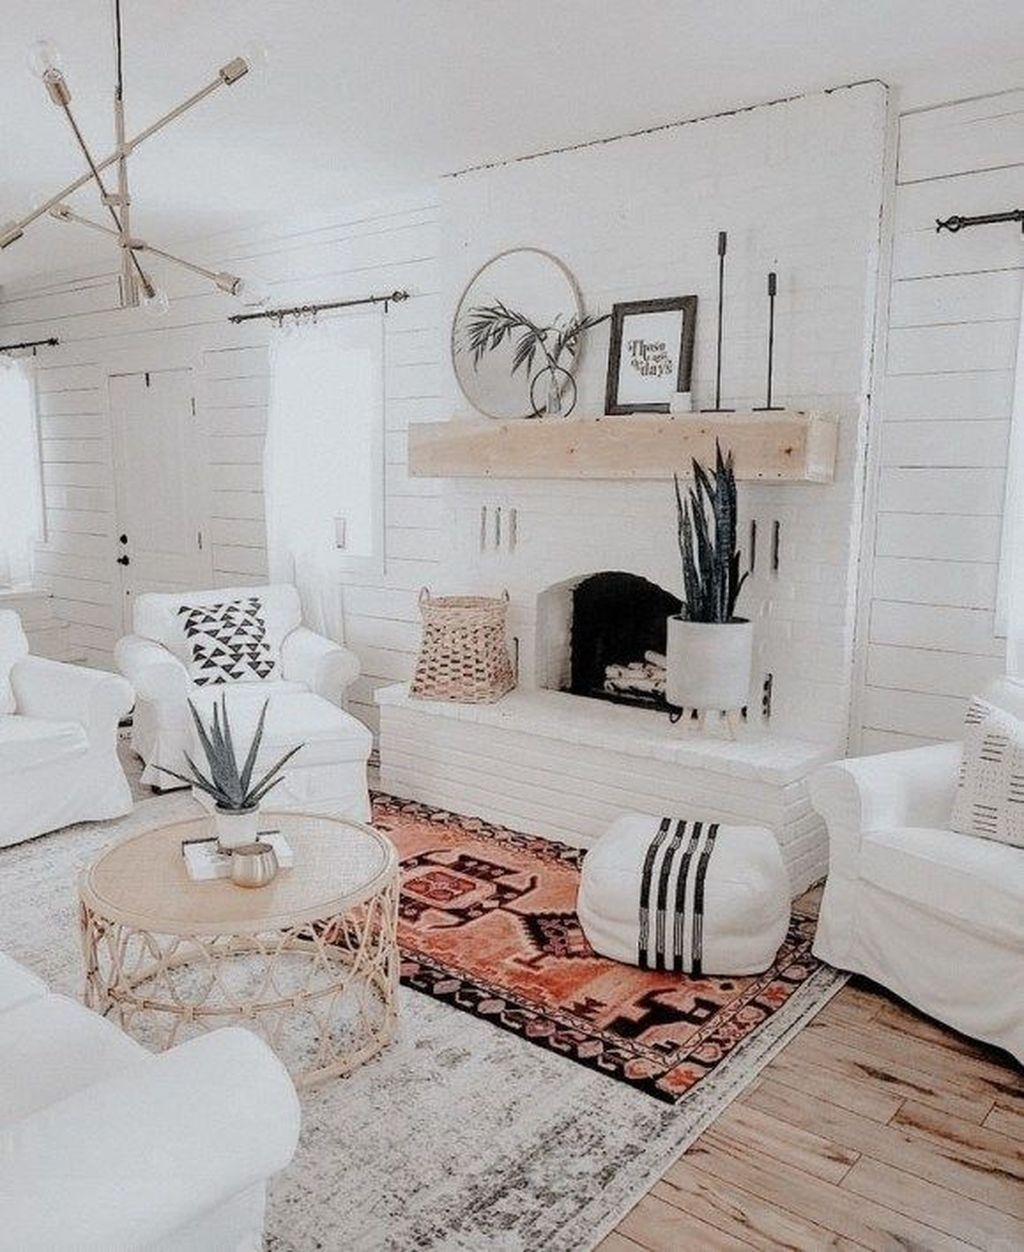 30 Rustic Living Room Decoration Ideas With Bohemian Style In 2020 Bohemian Living Room Decor Living Room Inspo Bohemian Living Room